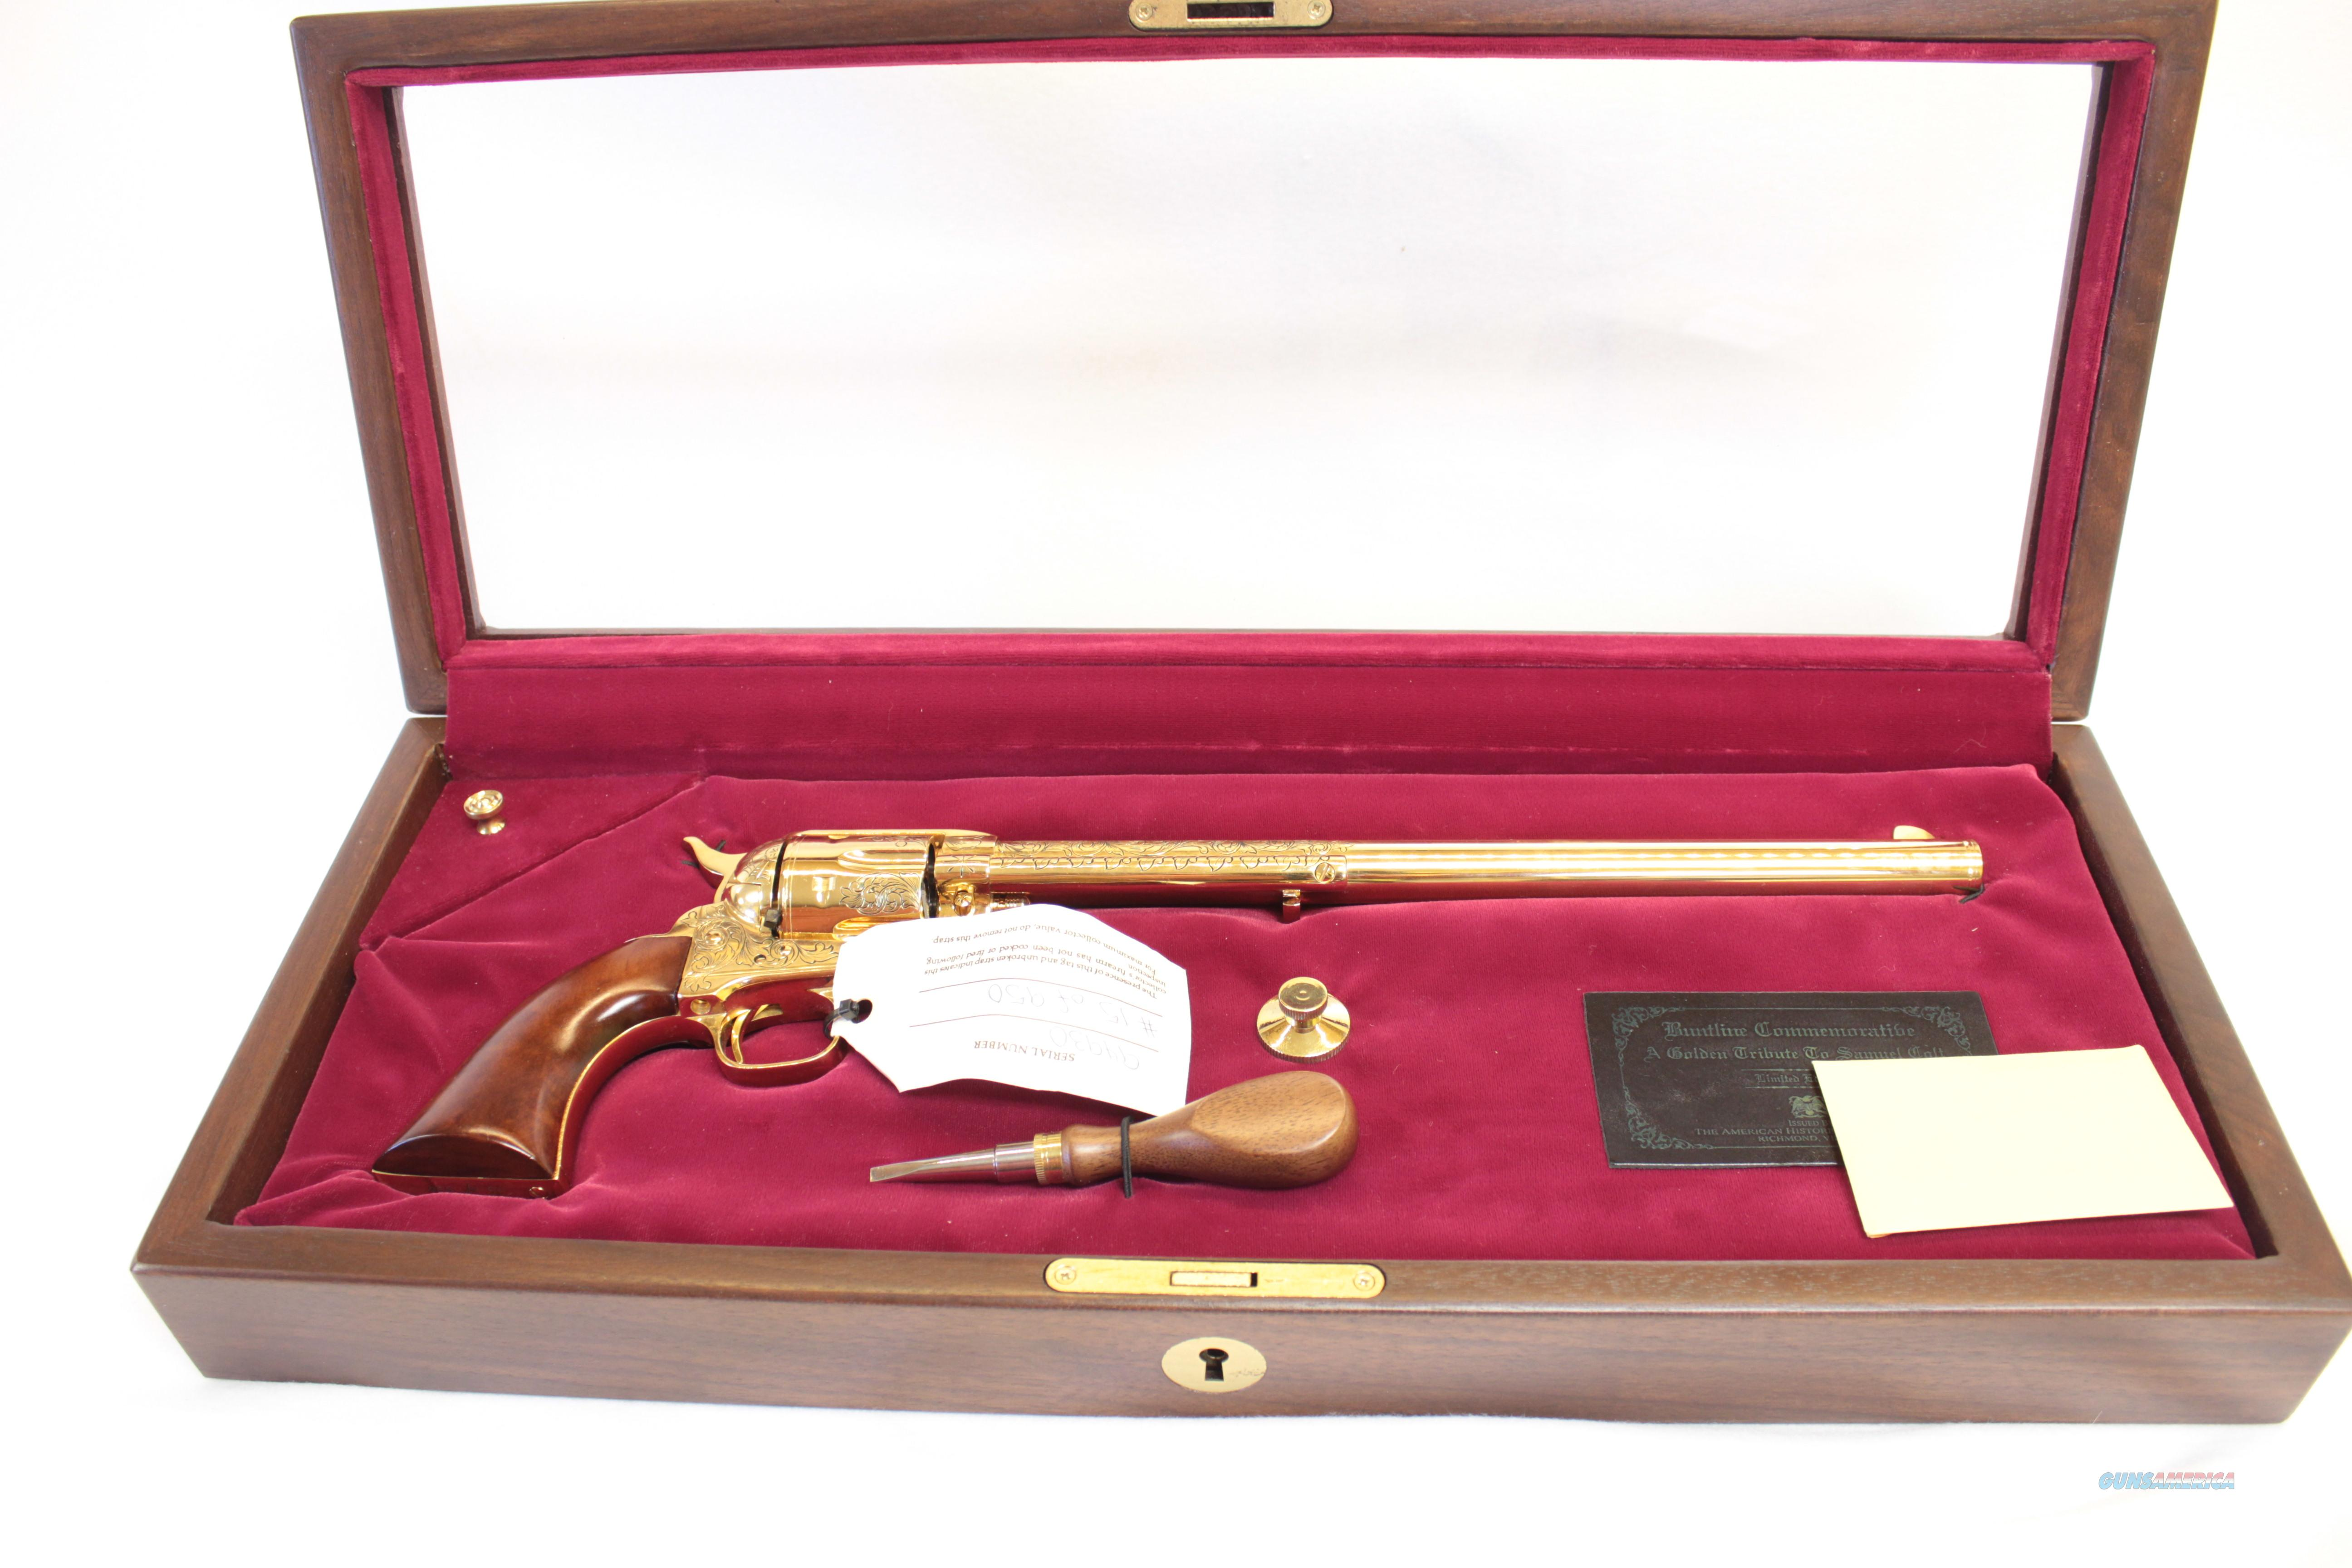 REDUCED Golden Tribute Samuel Colt SAA by Uberti & AHF as new  Guns > Pistols > Colt Commemorative Pistols